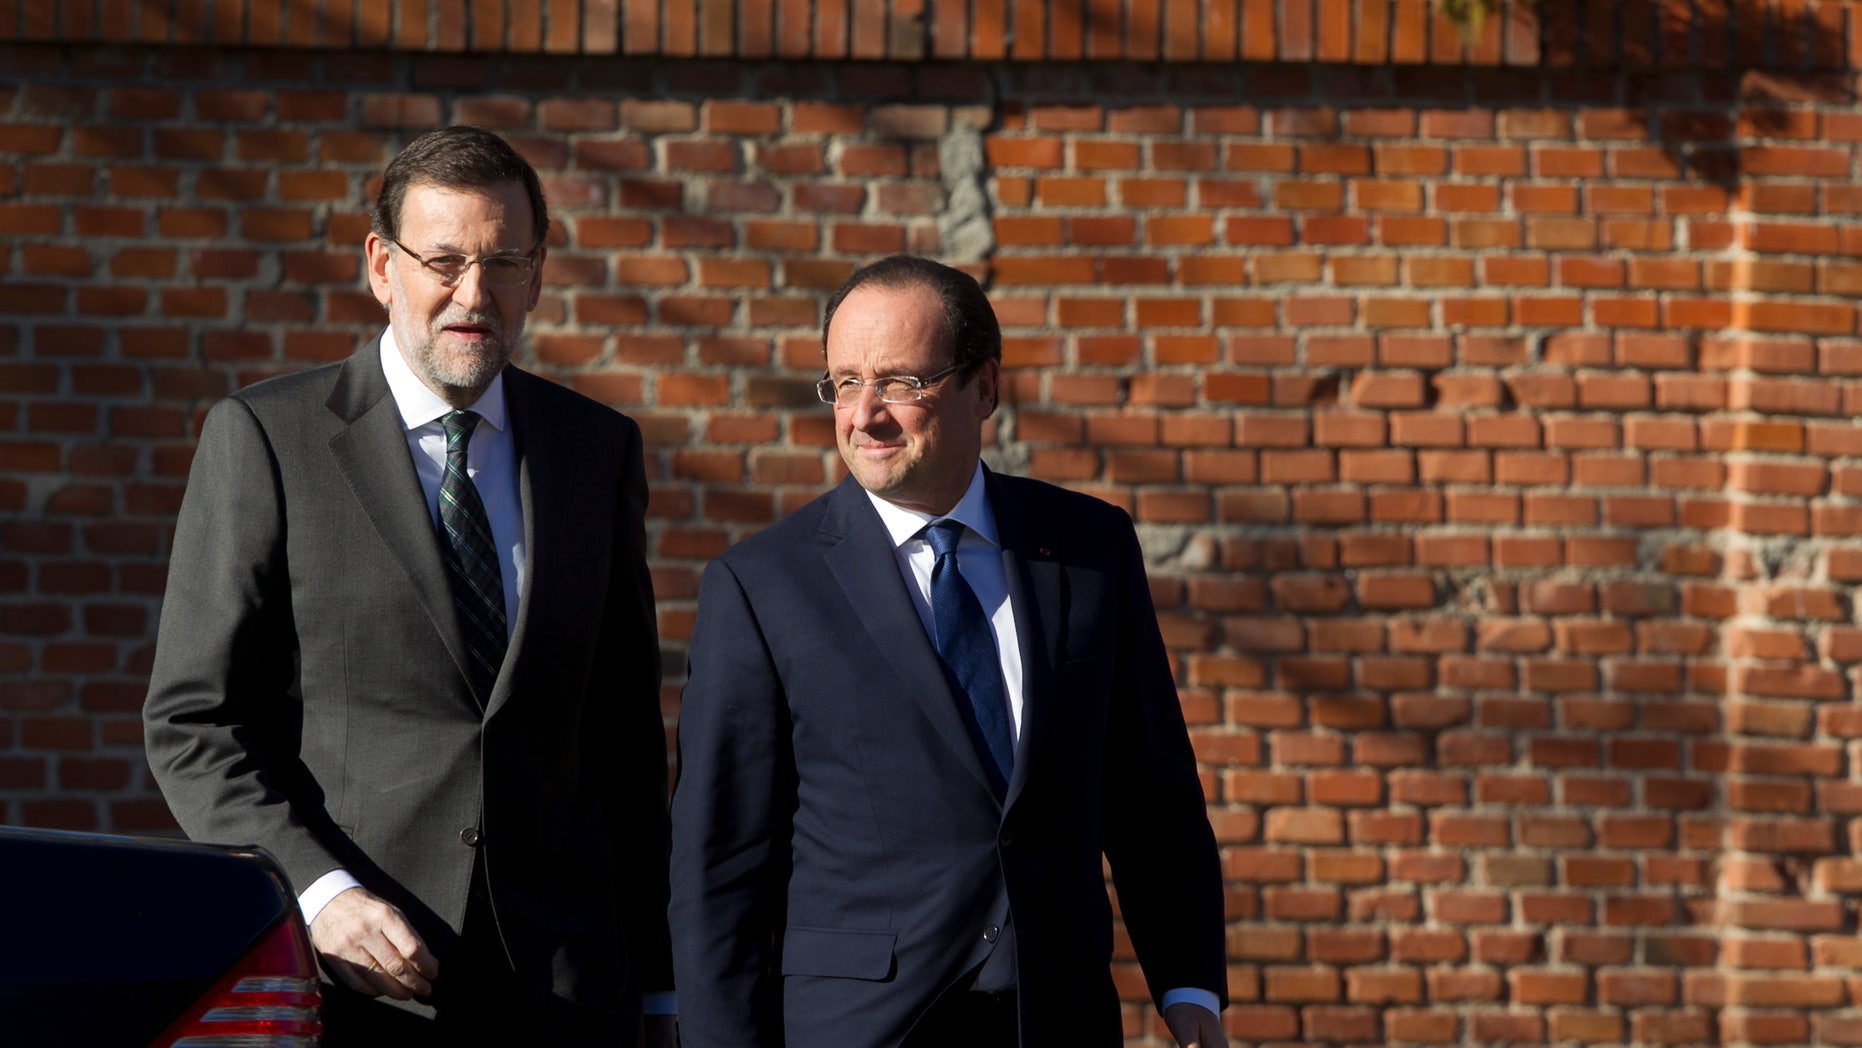 Spain's Prime Minister Mariano Rajoy, left, welcomes French President Francois Hollande before a meeting at the Moncloa Palace in Madrid, Spain, Wednesday, Nov.  27, 2013. Rajoy is holding talks with French President Francois Hollande as part of a bilateral summit. (AP Photo/Gabriel Pecot)